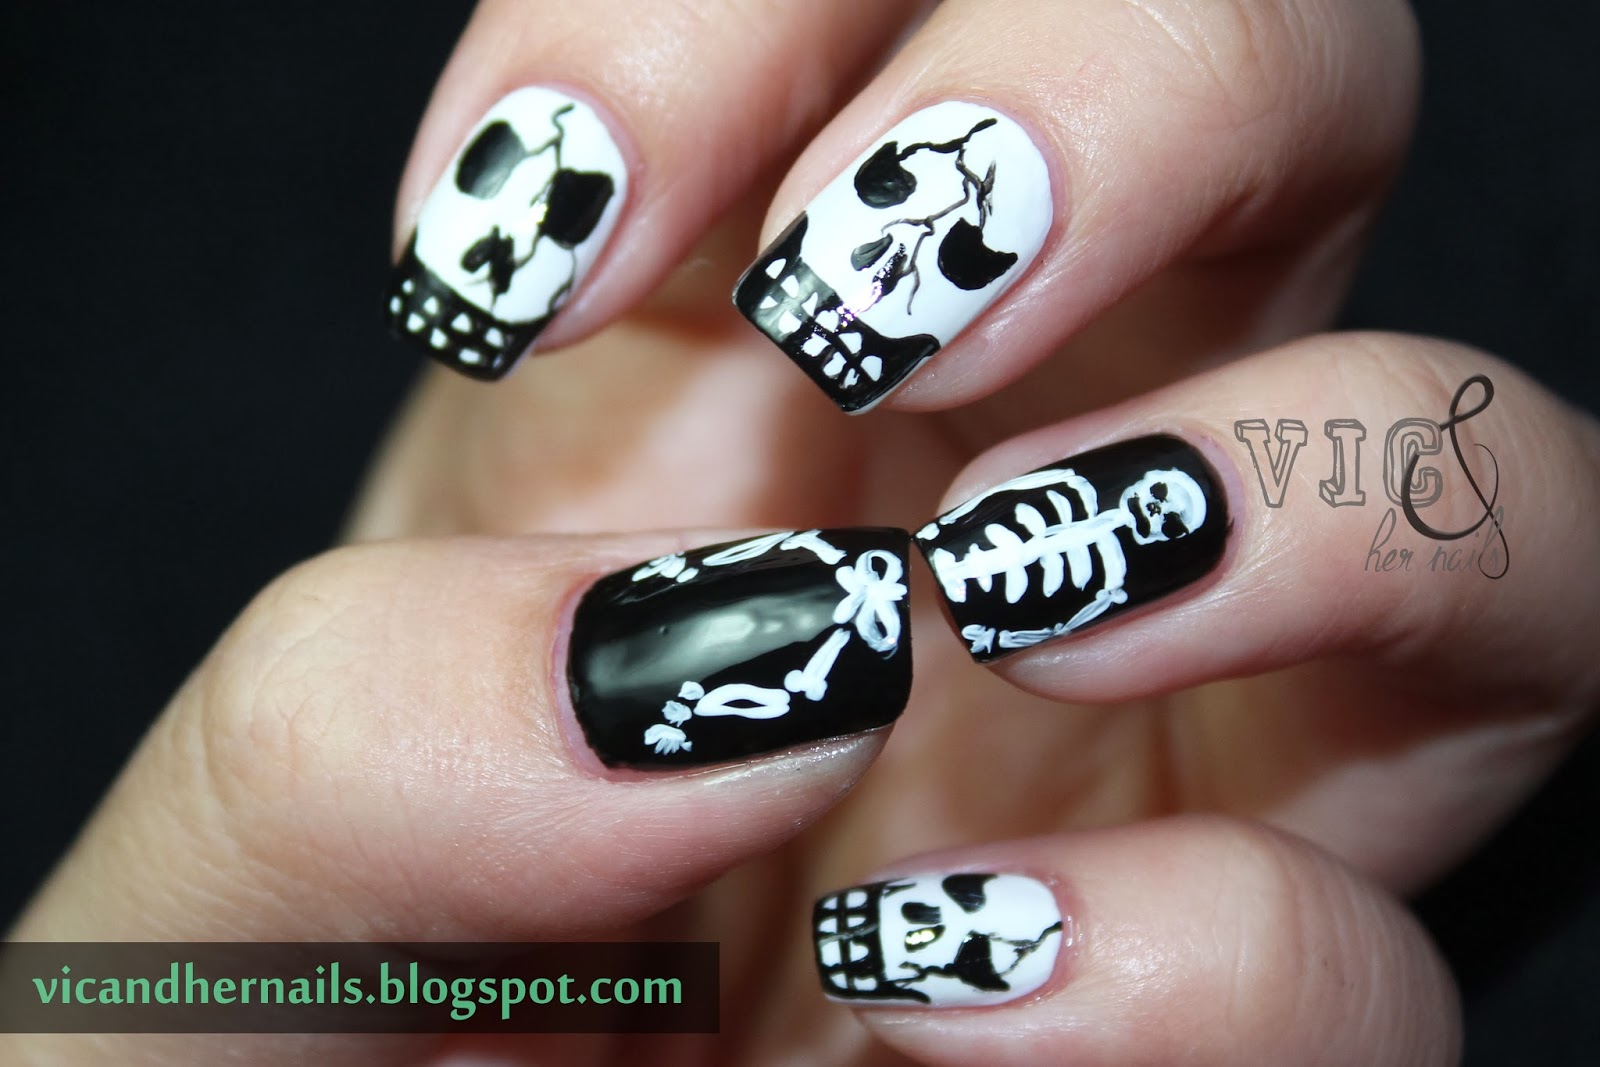 Vic and her nails halloween nail art challenge skullskeleton halloween nail art challenge skullskeleton prinsesfo Images